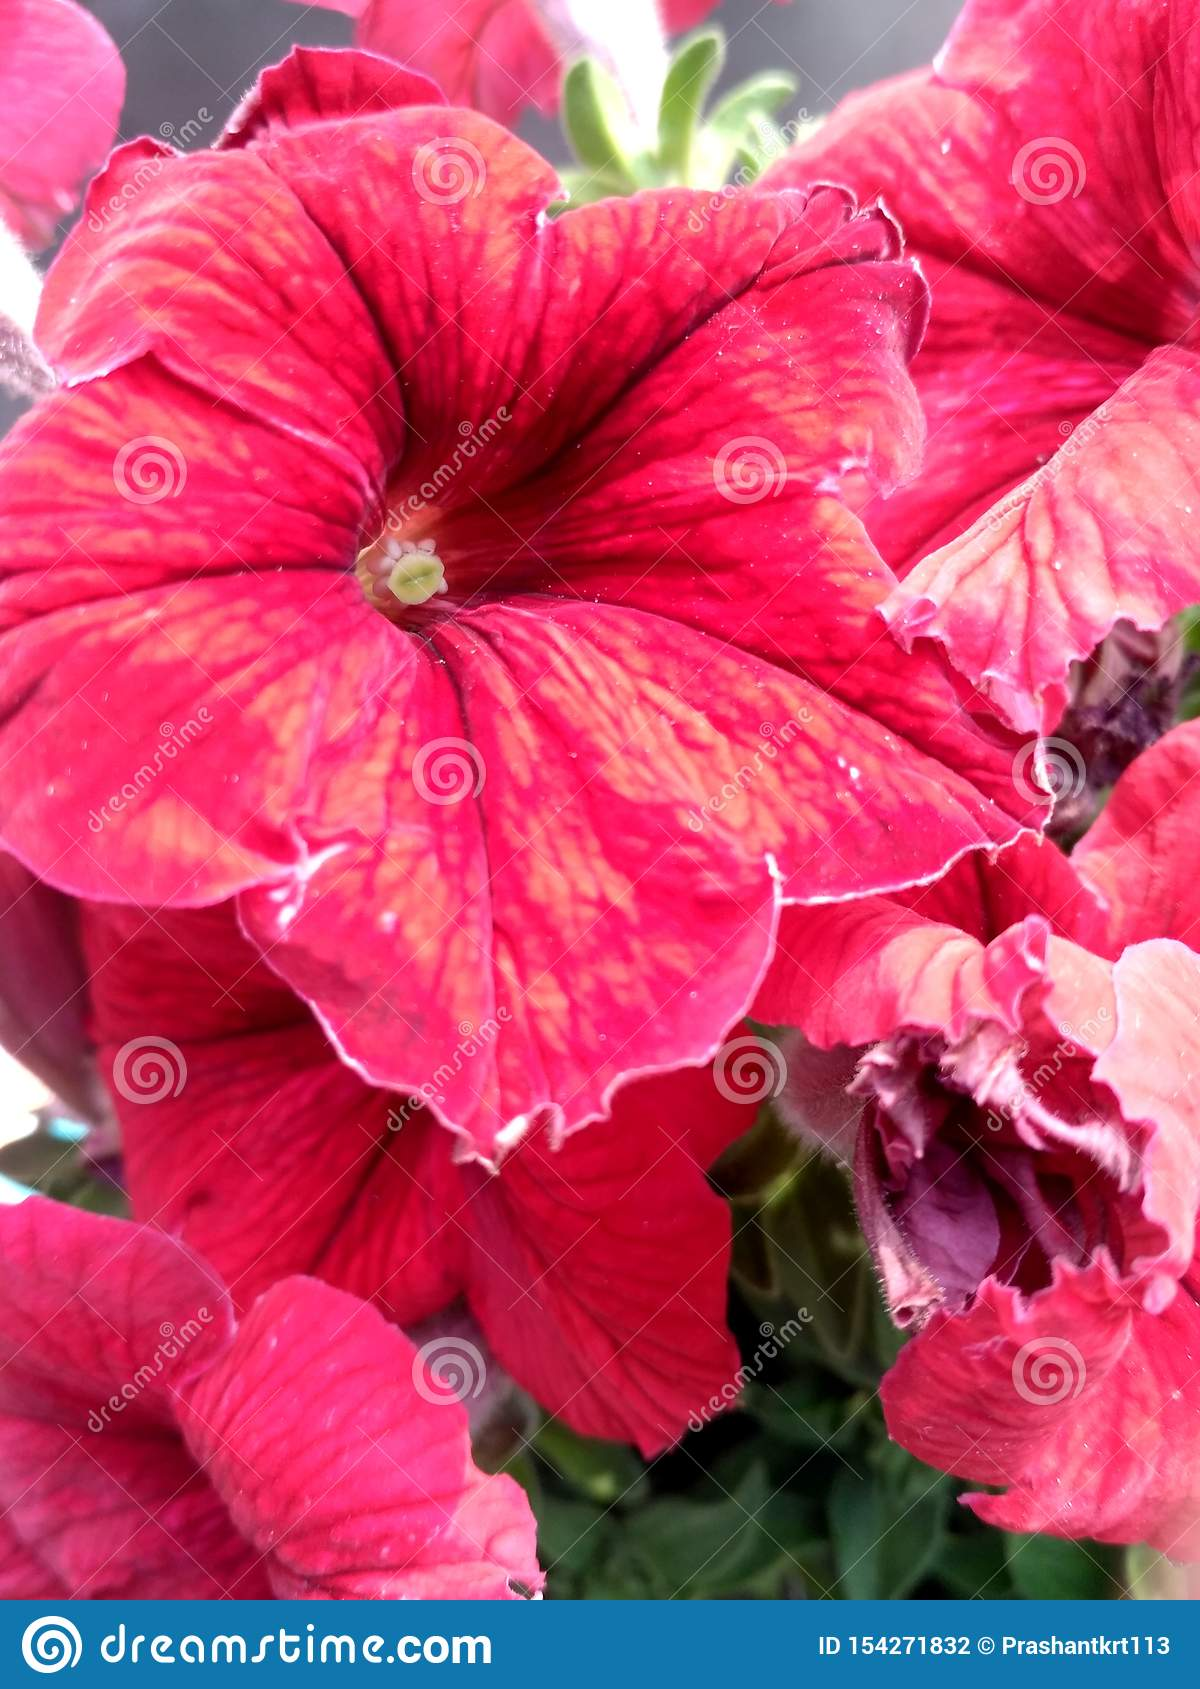 Red Beautiful Flower Hd Image Of Nature Morning Seen Stock Photo Image Of Colour Hdflowerimage 154271832